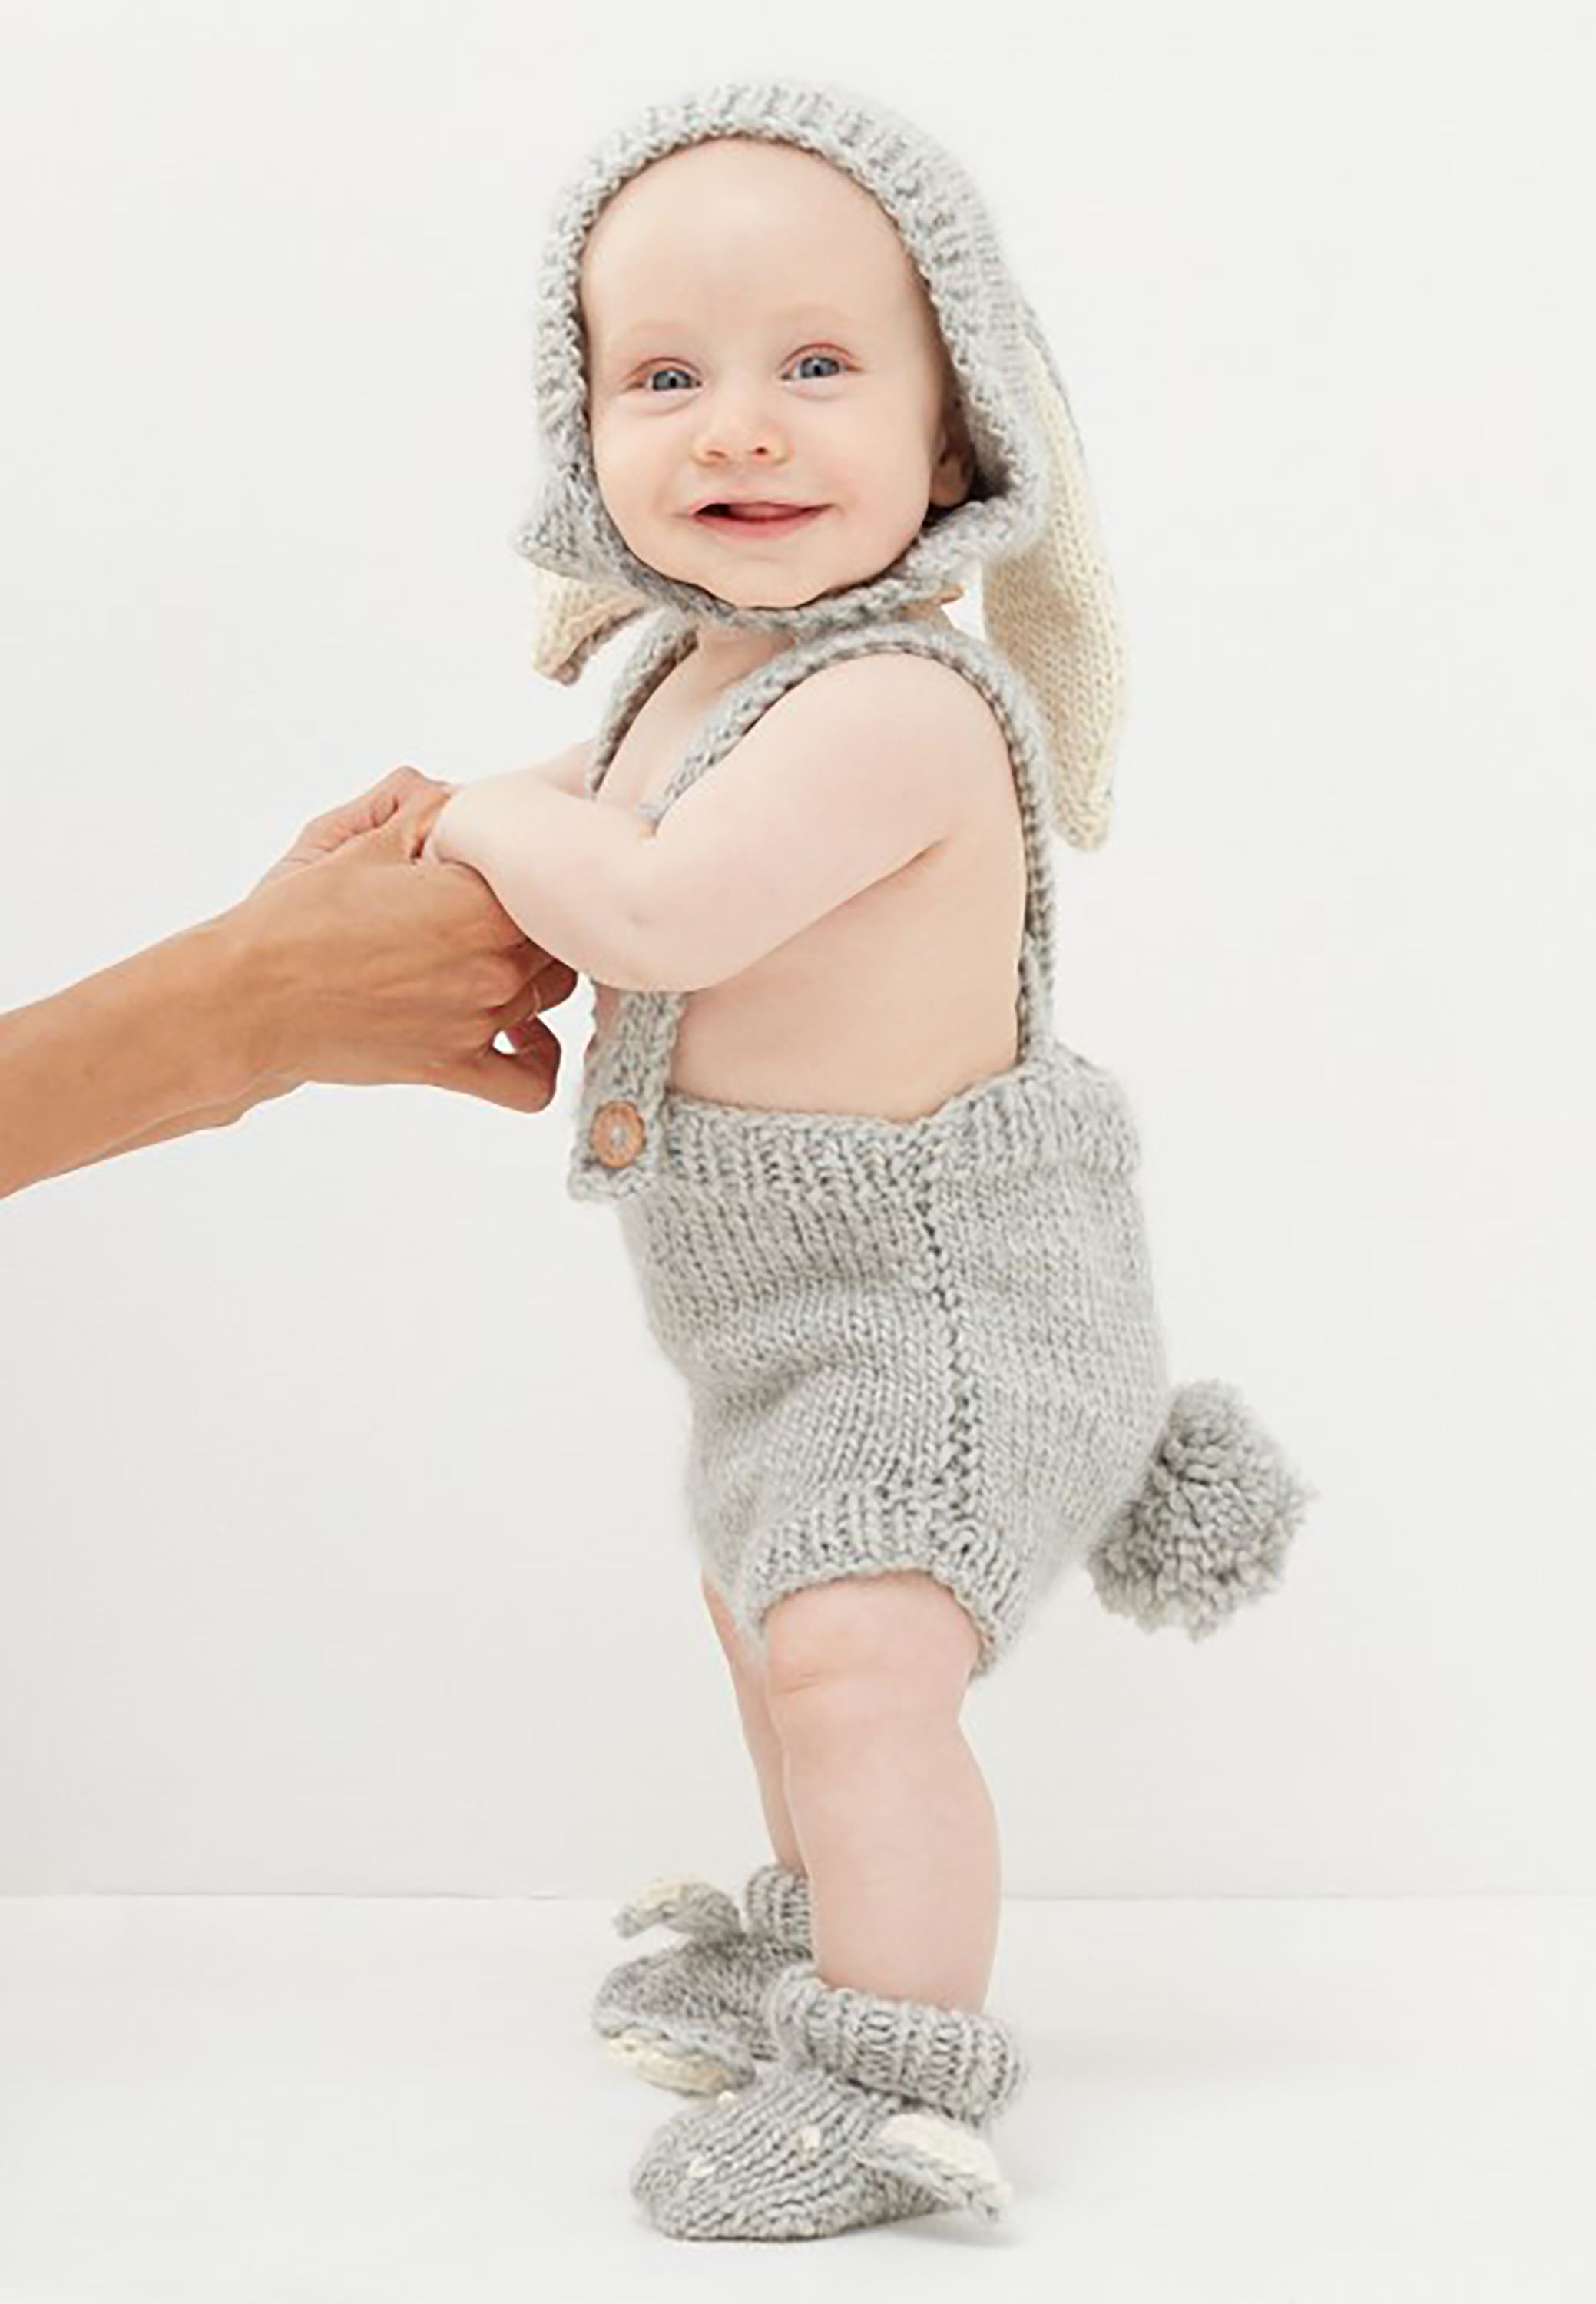 13 crocheted baby halloween costumes - cutest crocheted and knitted